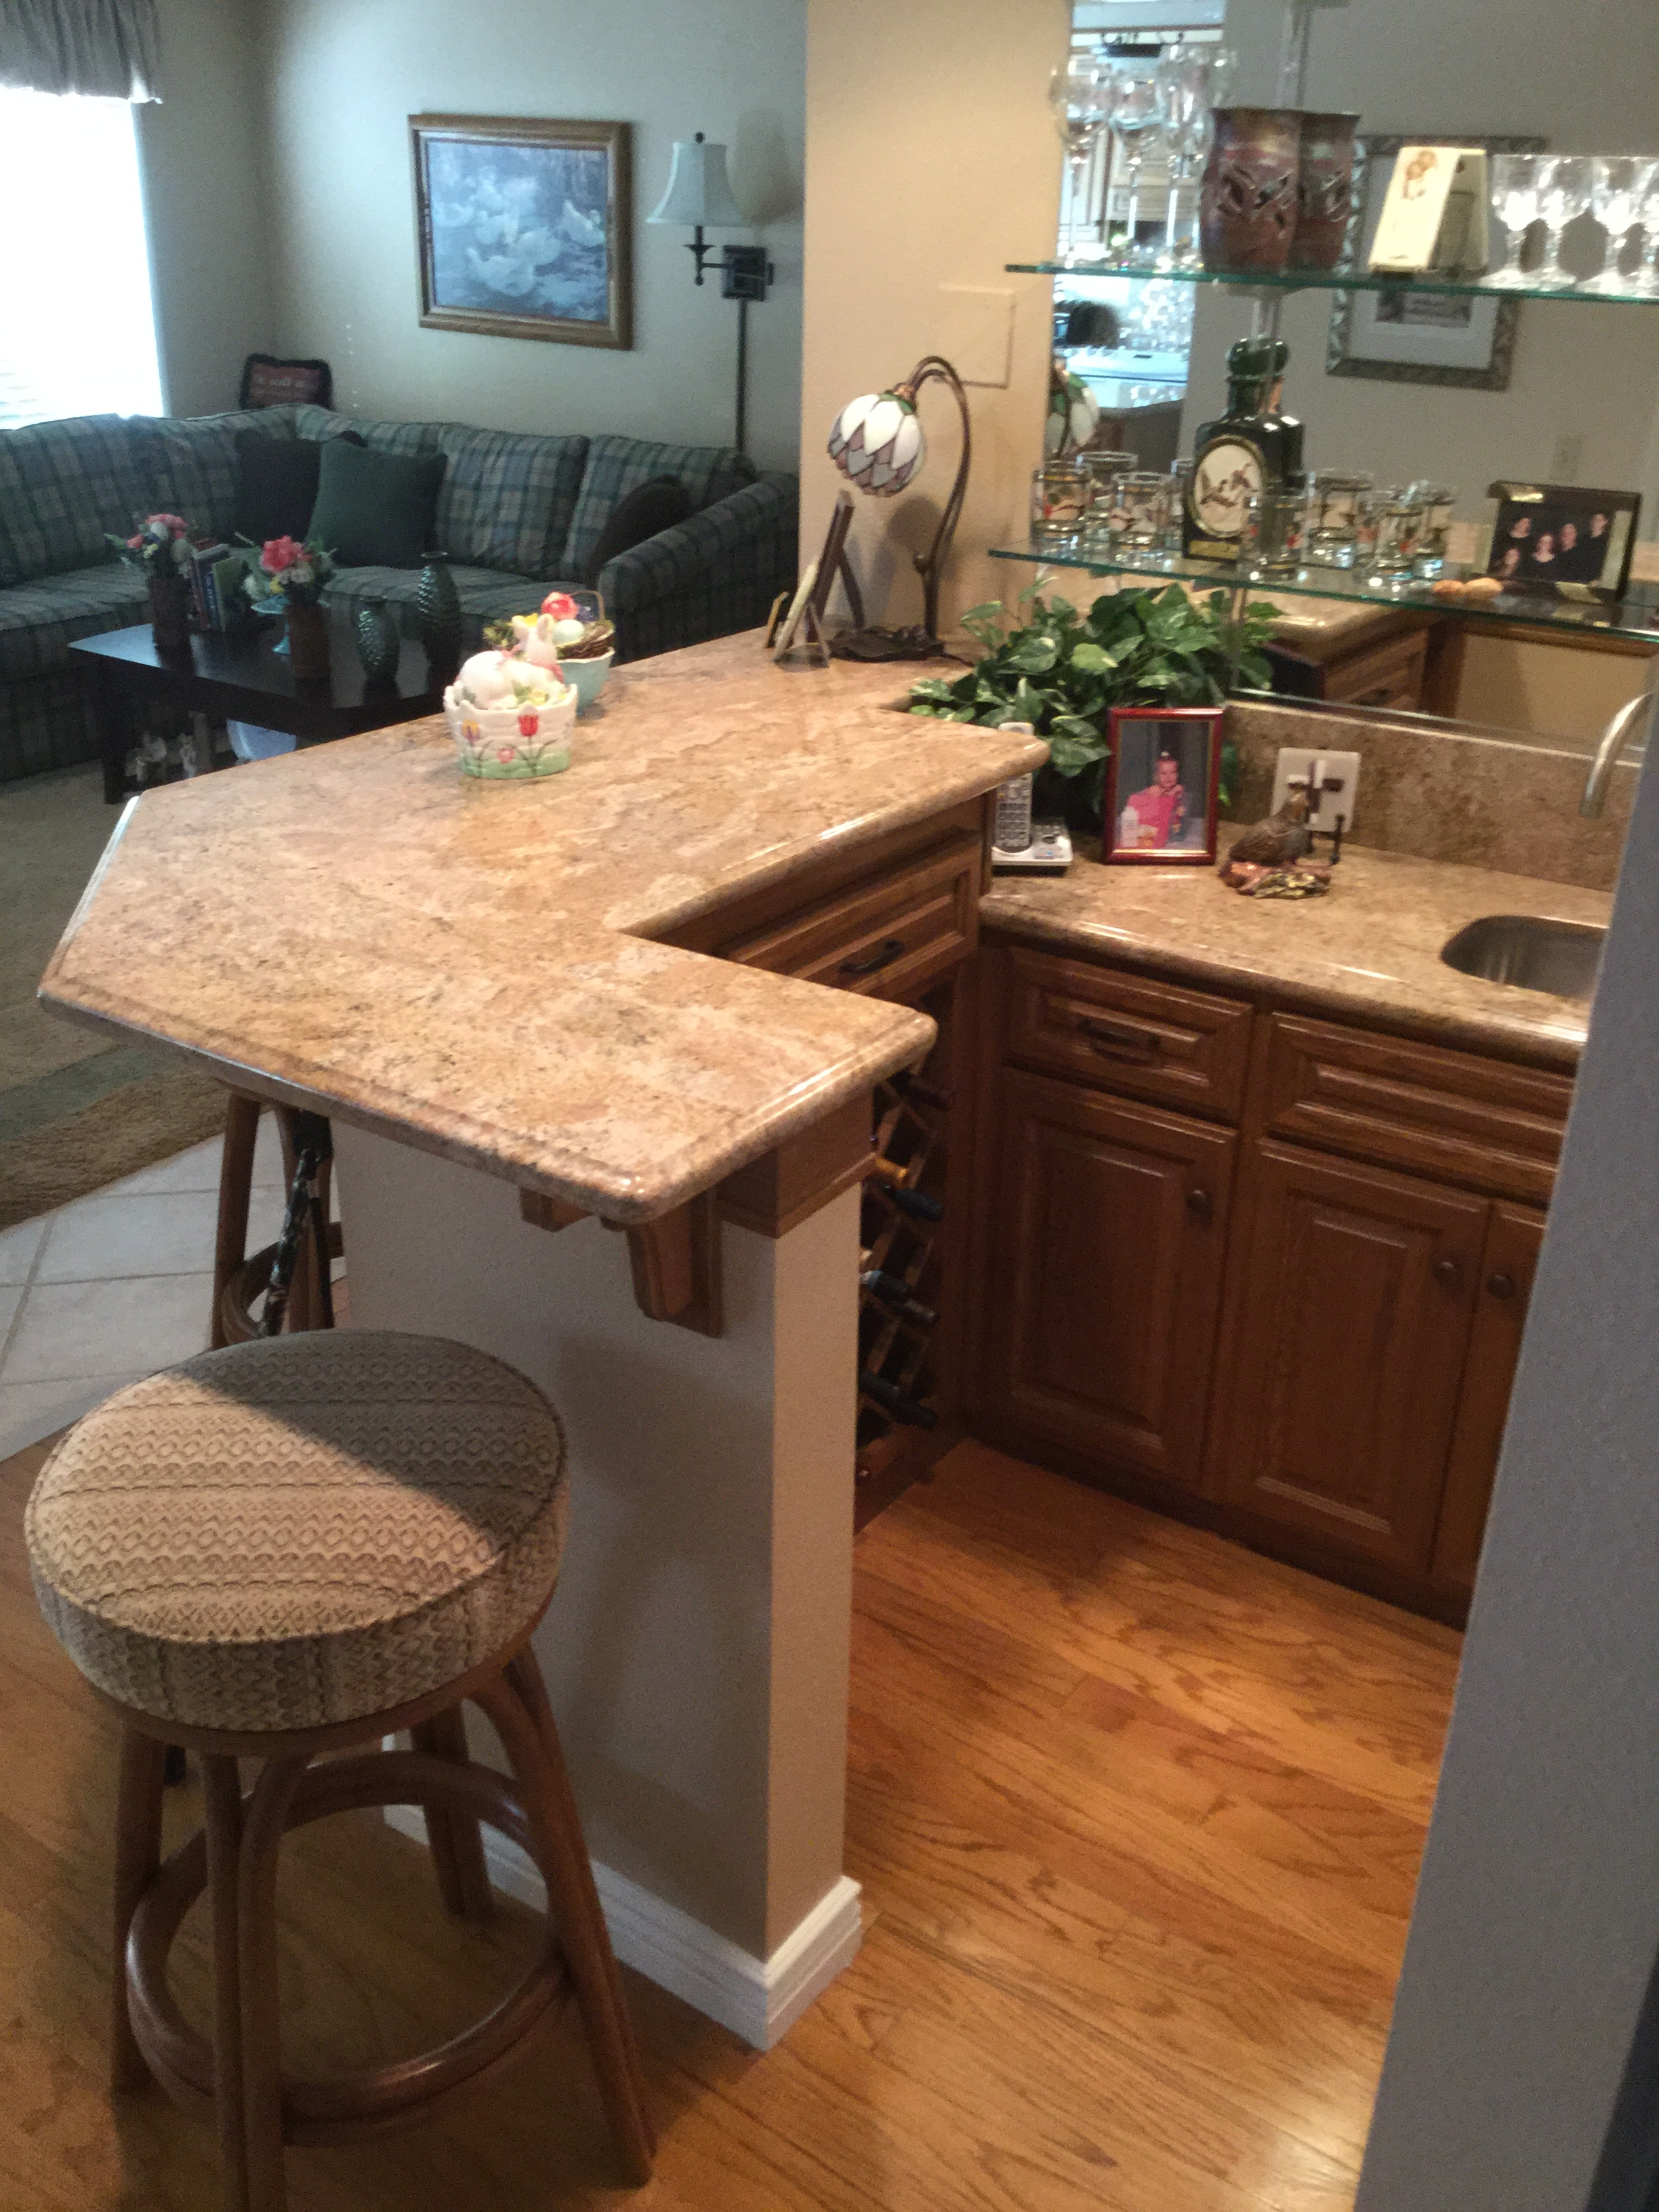 Brea Bar Top   Two Level Beautiful Juaparan Vyara Granite Bar Top With  Stainless Steel Undermount Sink. Custom Cut To Fit With An Ogee Bullnosed  Edge And ...